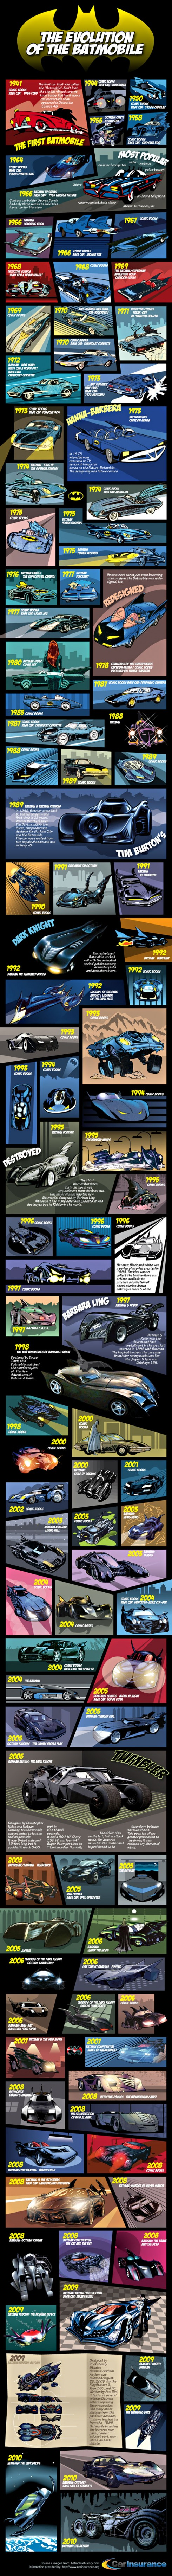 evolution-of-the-batmobile-image